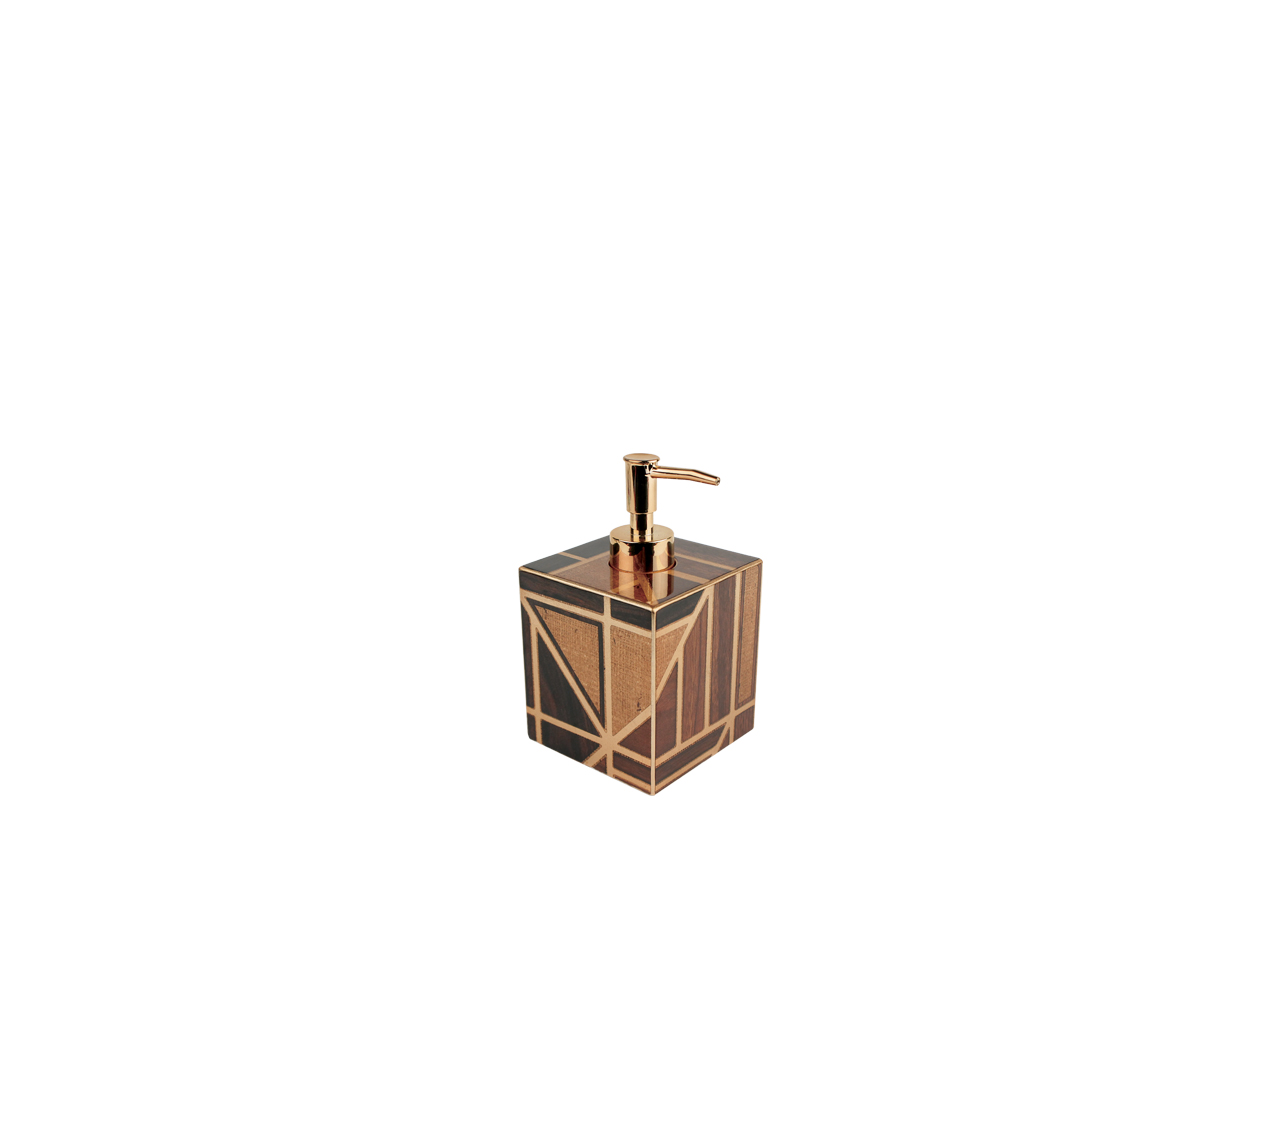 Kim seybert parquet bath accessories gracious style for Brown and gold bathroom accessories